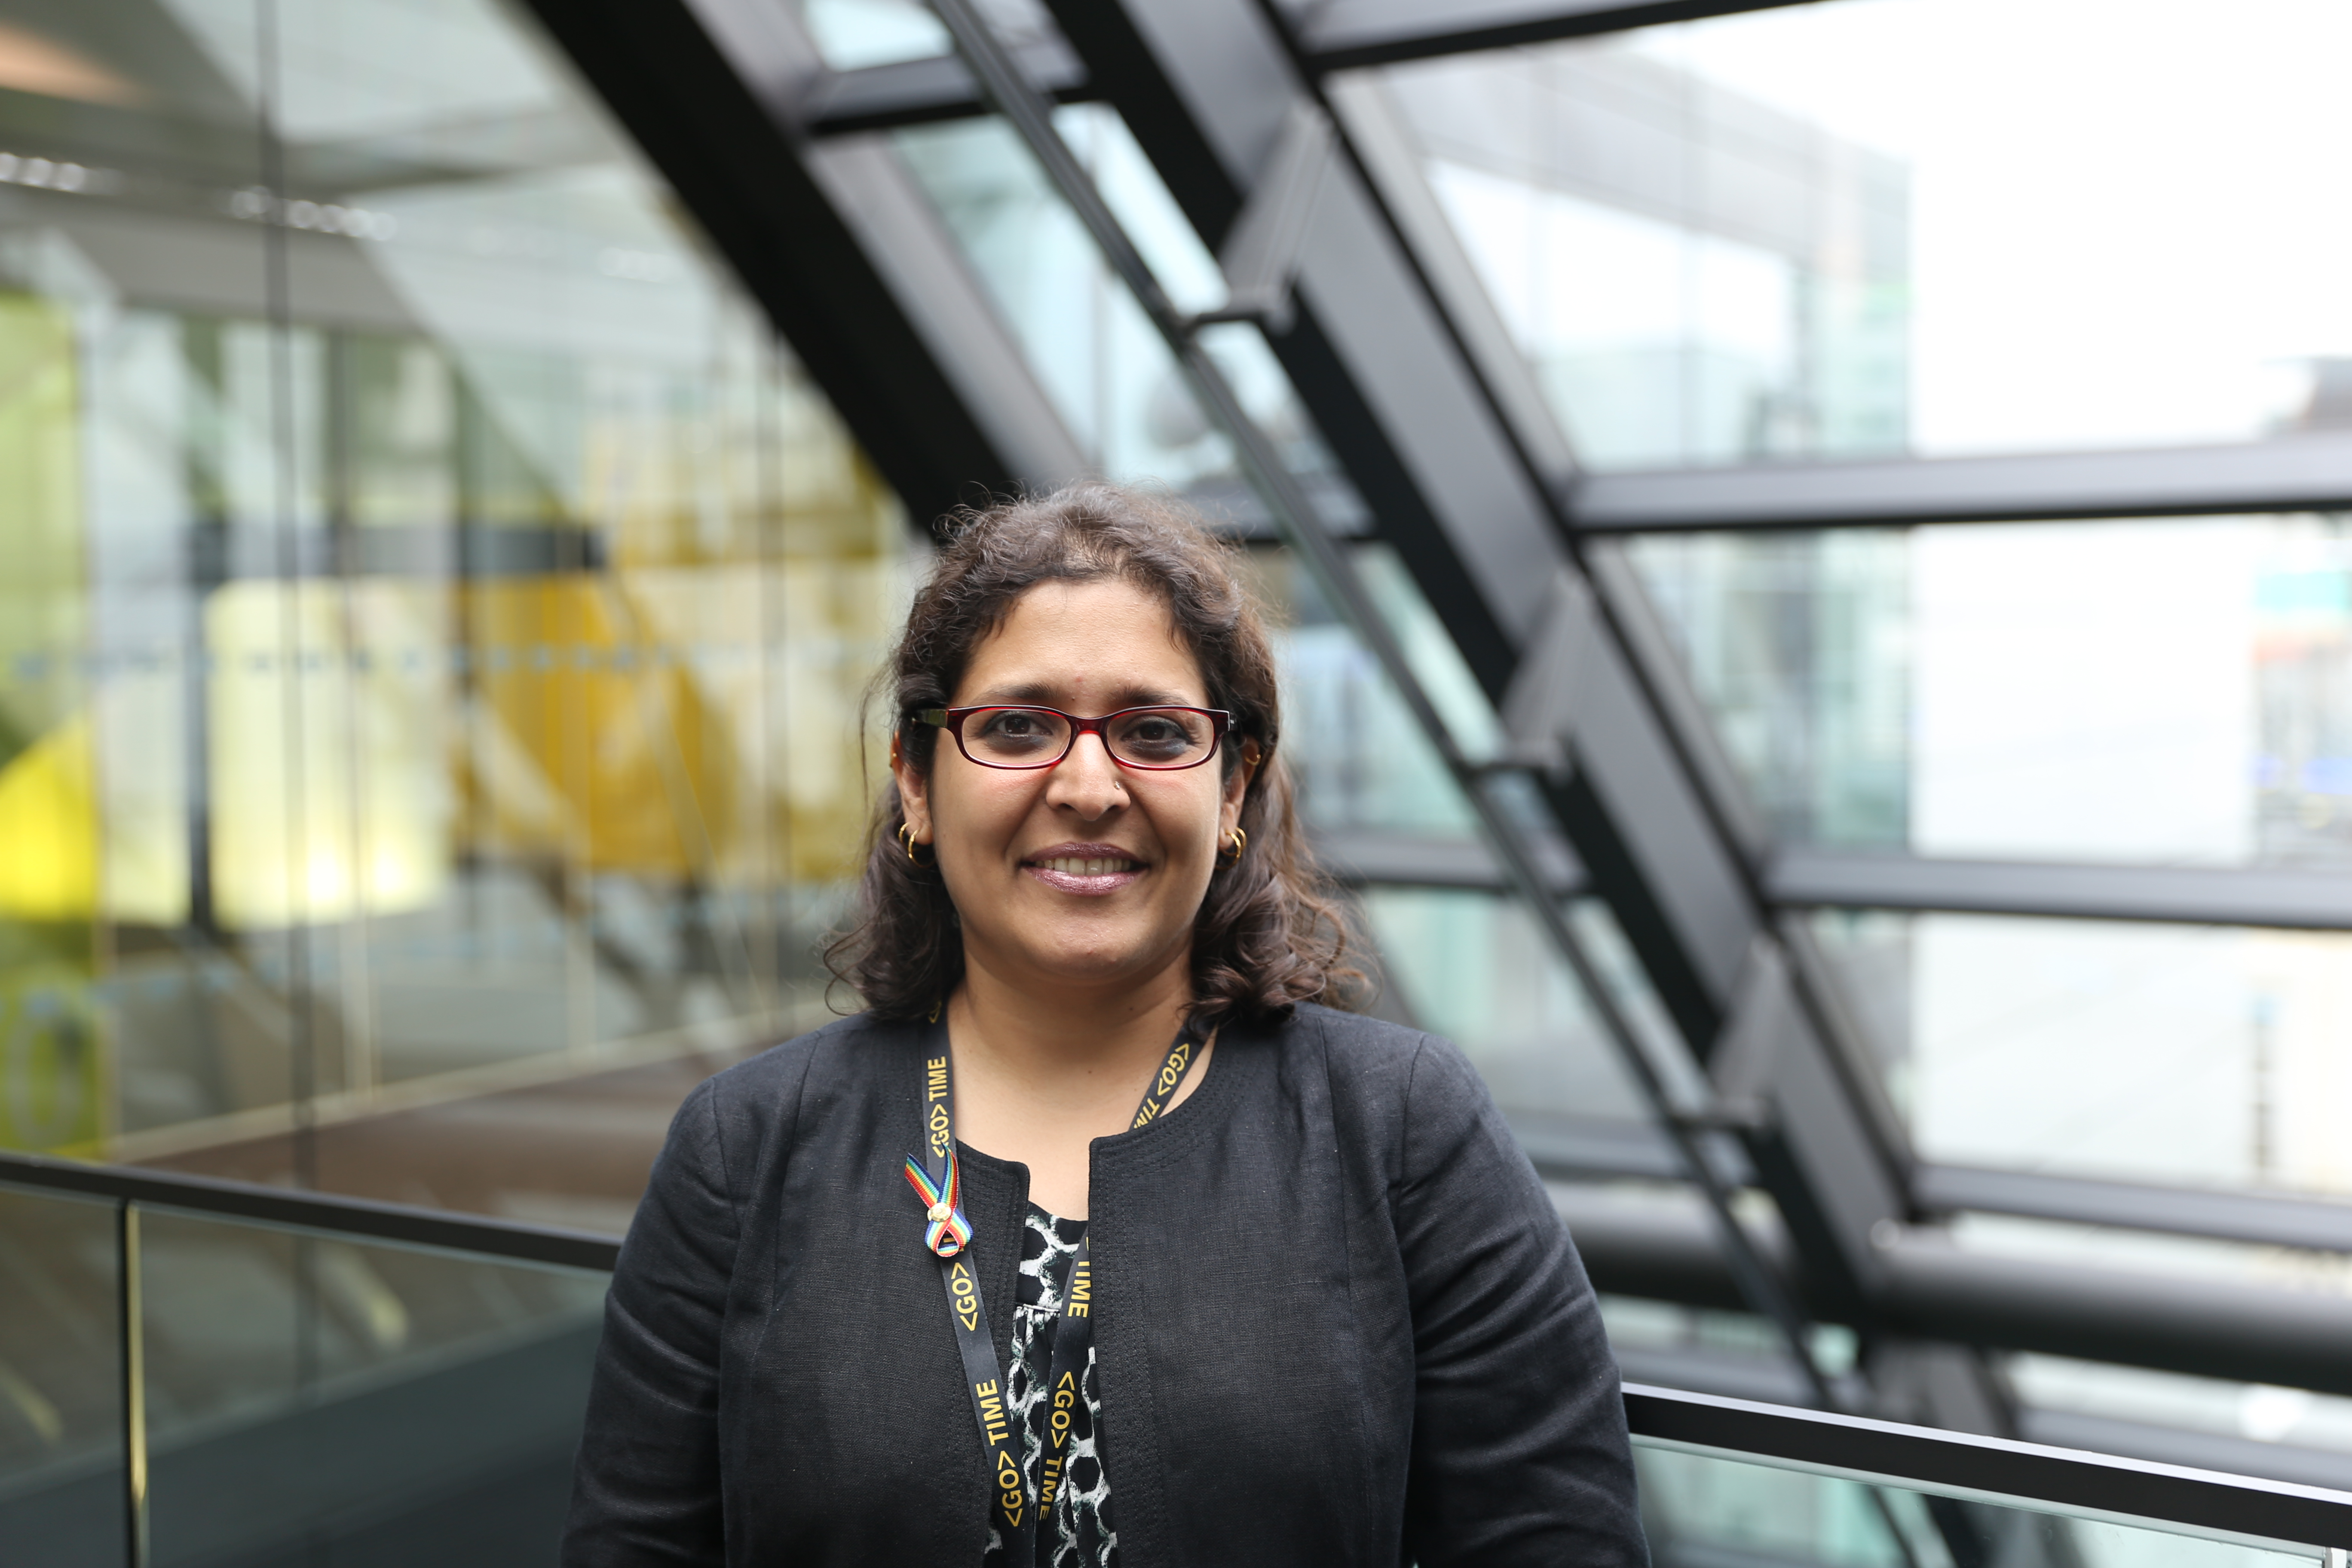 Bloomberg's Panna Pavangadkar will be a panelist next week at Grace Hopper Celebration India (GHCI) in Bangalore.